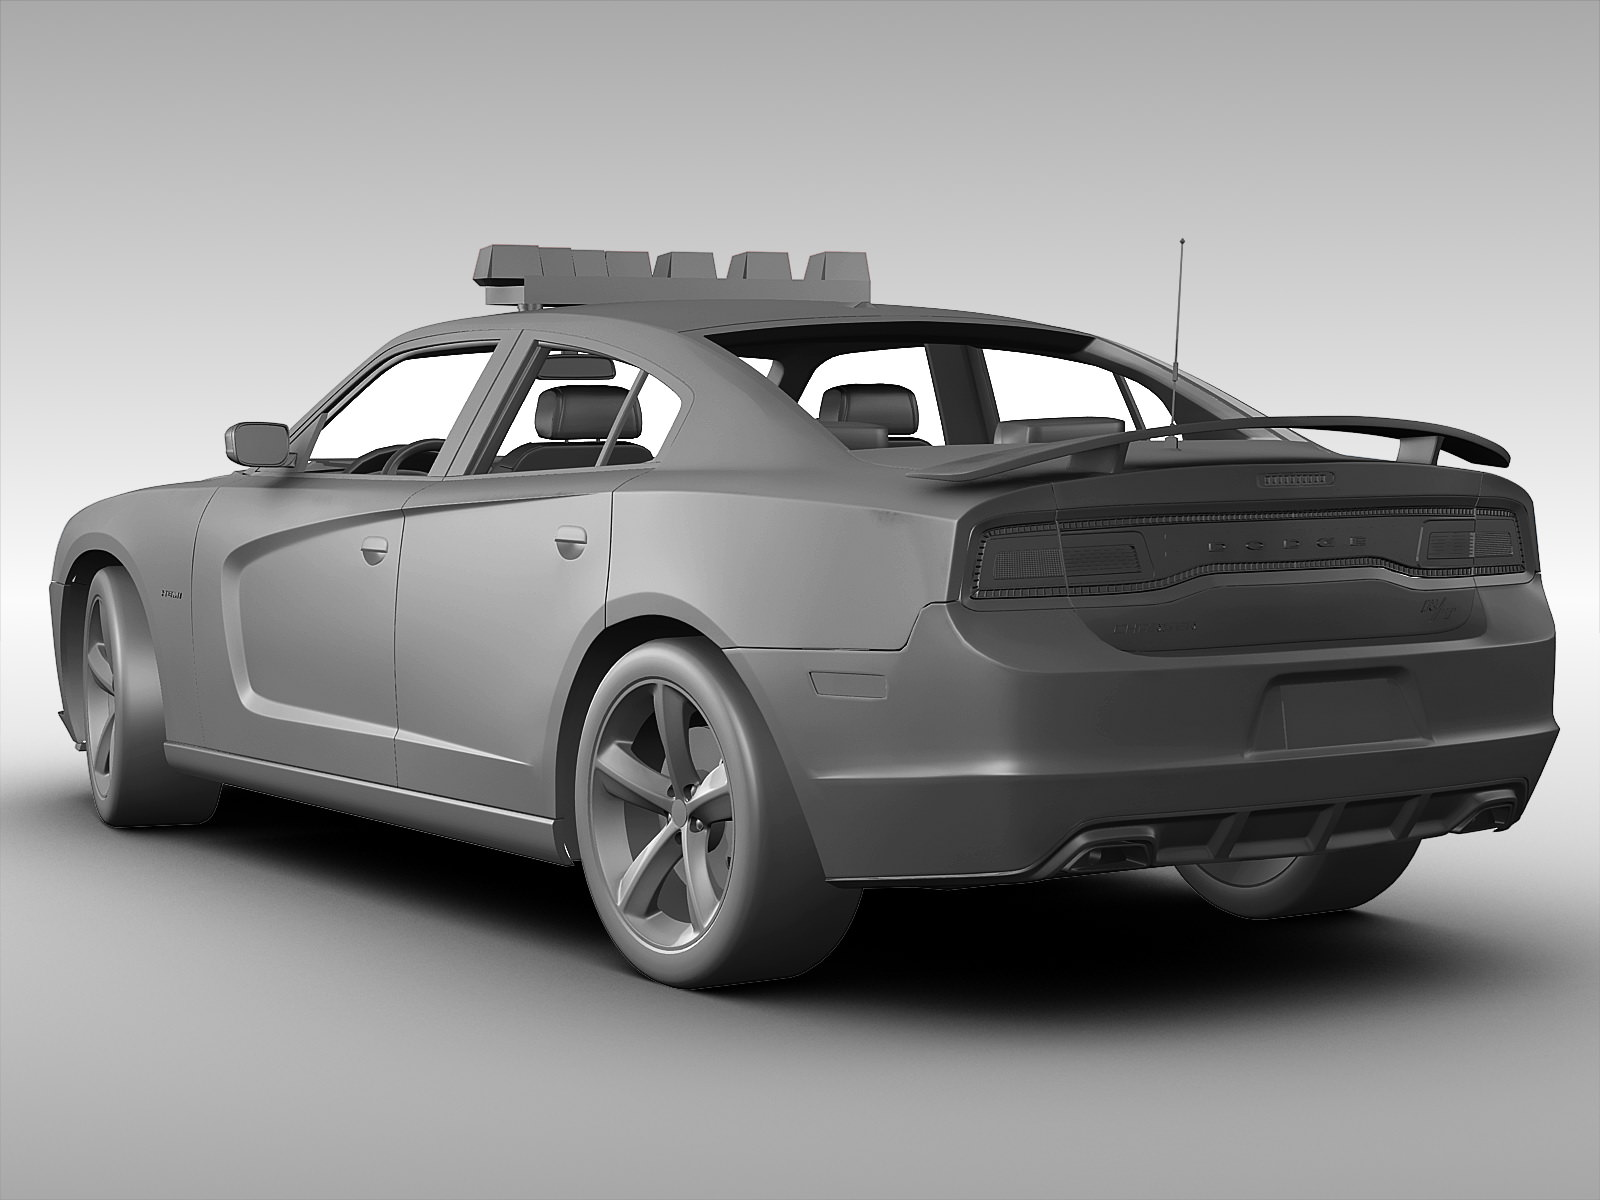 Dodge Charger NYPD Police Car 2013 3D Model .max .obj .3ds ...